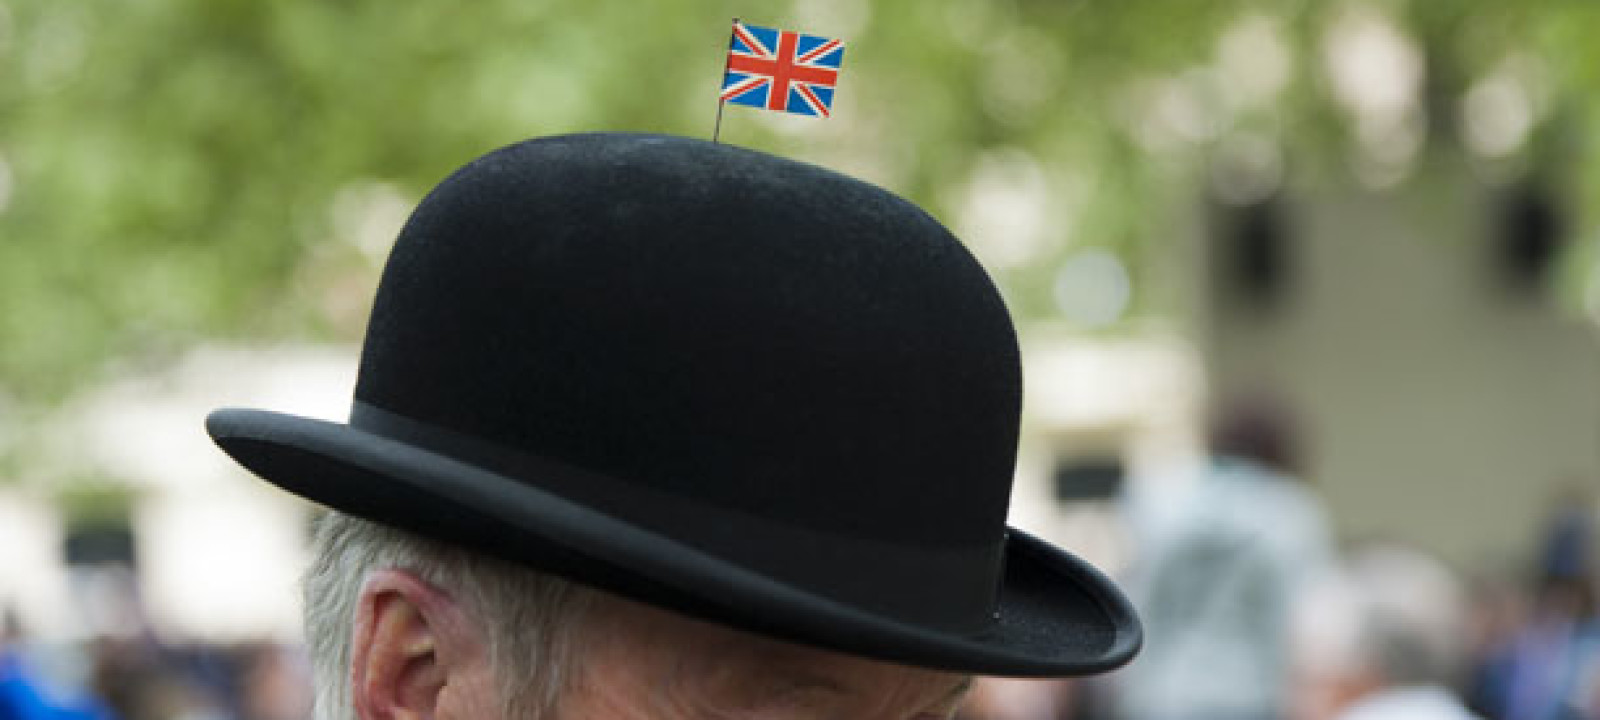 c90b9ac26be 10 Photos of Brits Actually Wearing Bowler Hats